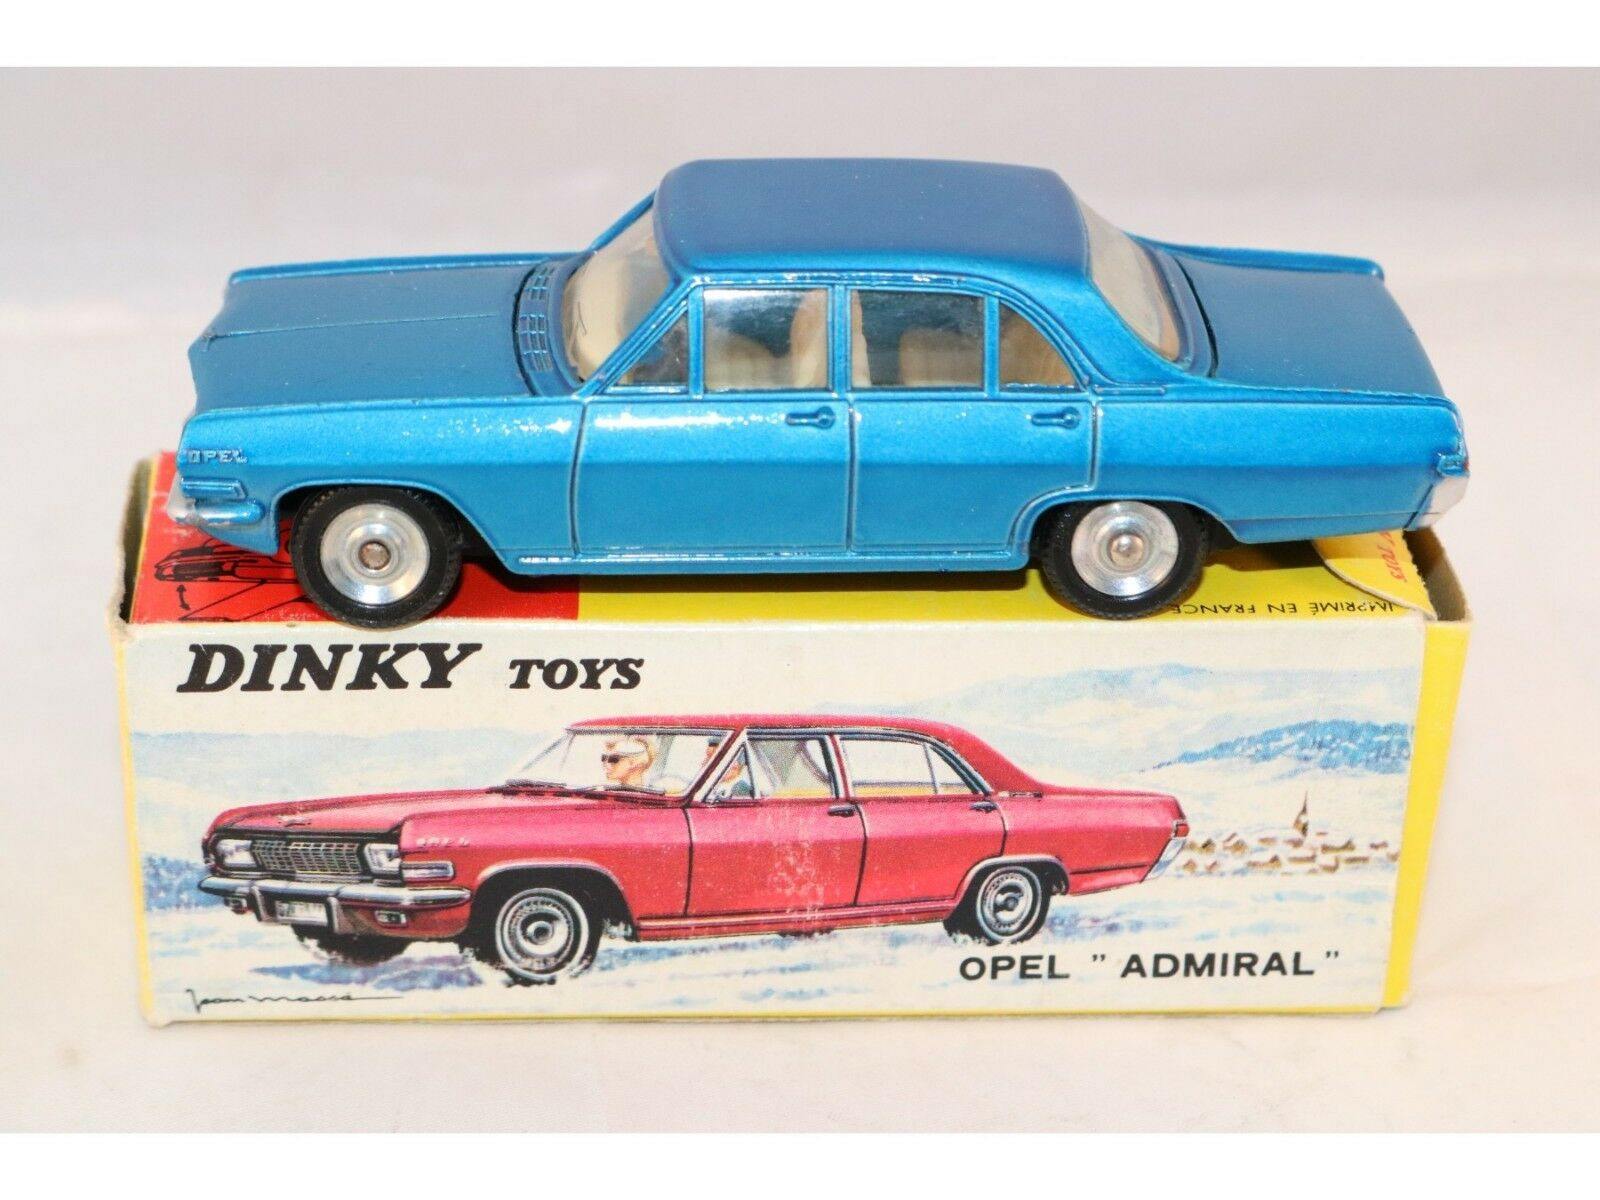 Dinky Toys 513 Opel Admiral bleu mint in box and box with dealer tag Superb